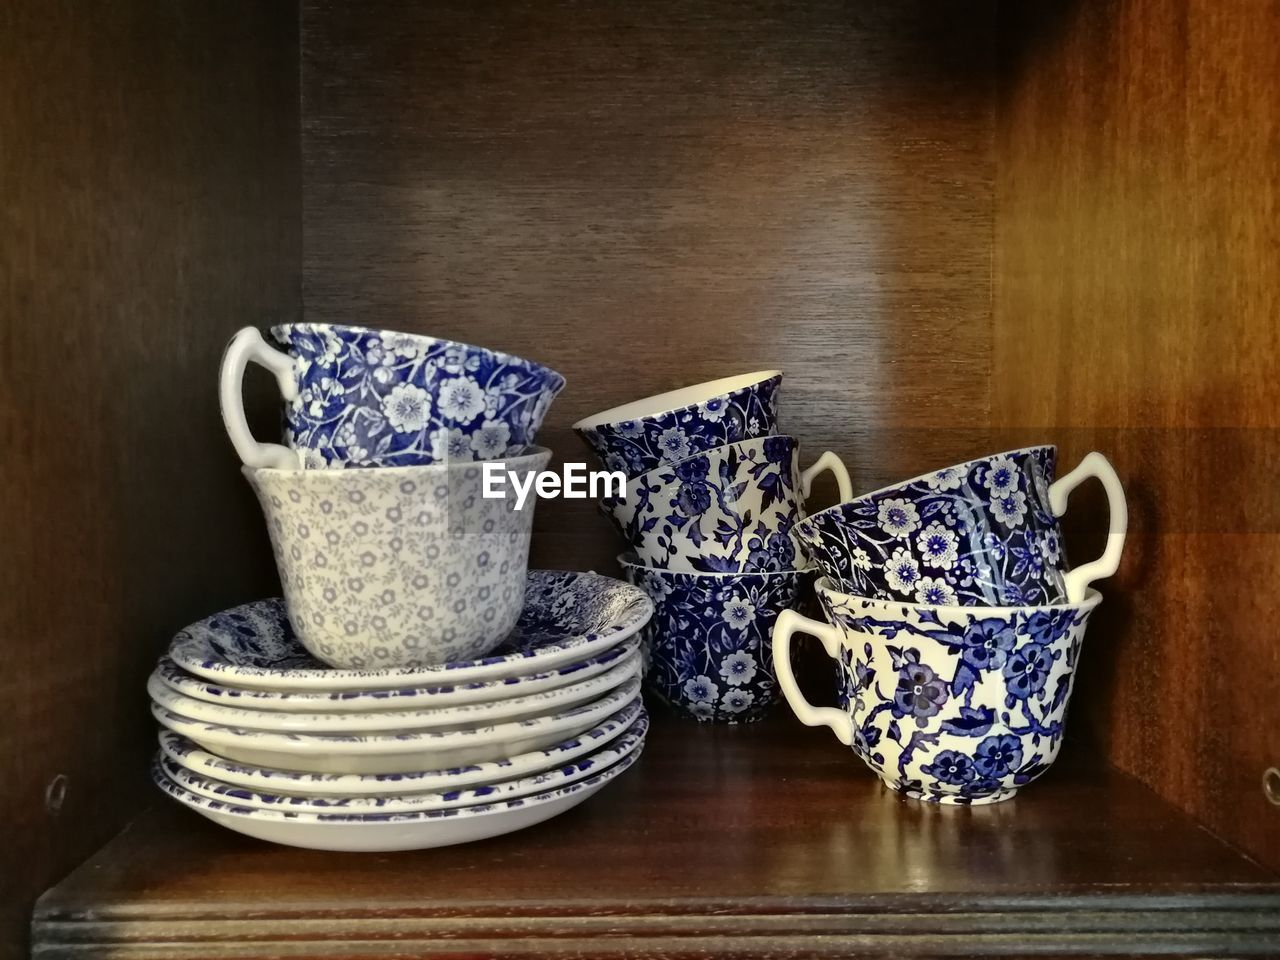 indoors, table, wood - material, cup, ceramics, no people, crockery, still life, close-up, pattern, blue, mug, bowl, porcelain, floral pattern, food and drink, stack, art and craft, saucer, group of objects, ornate, tea cup